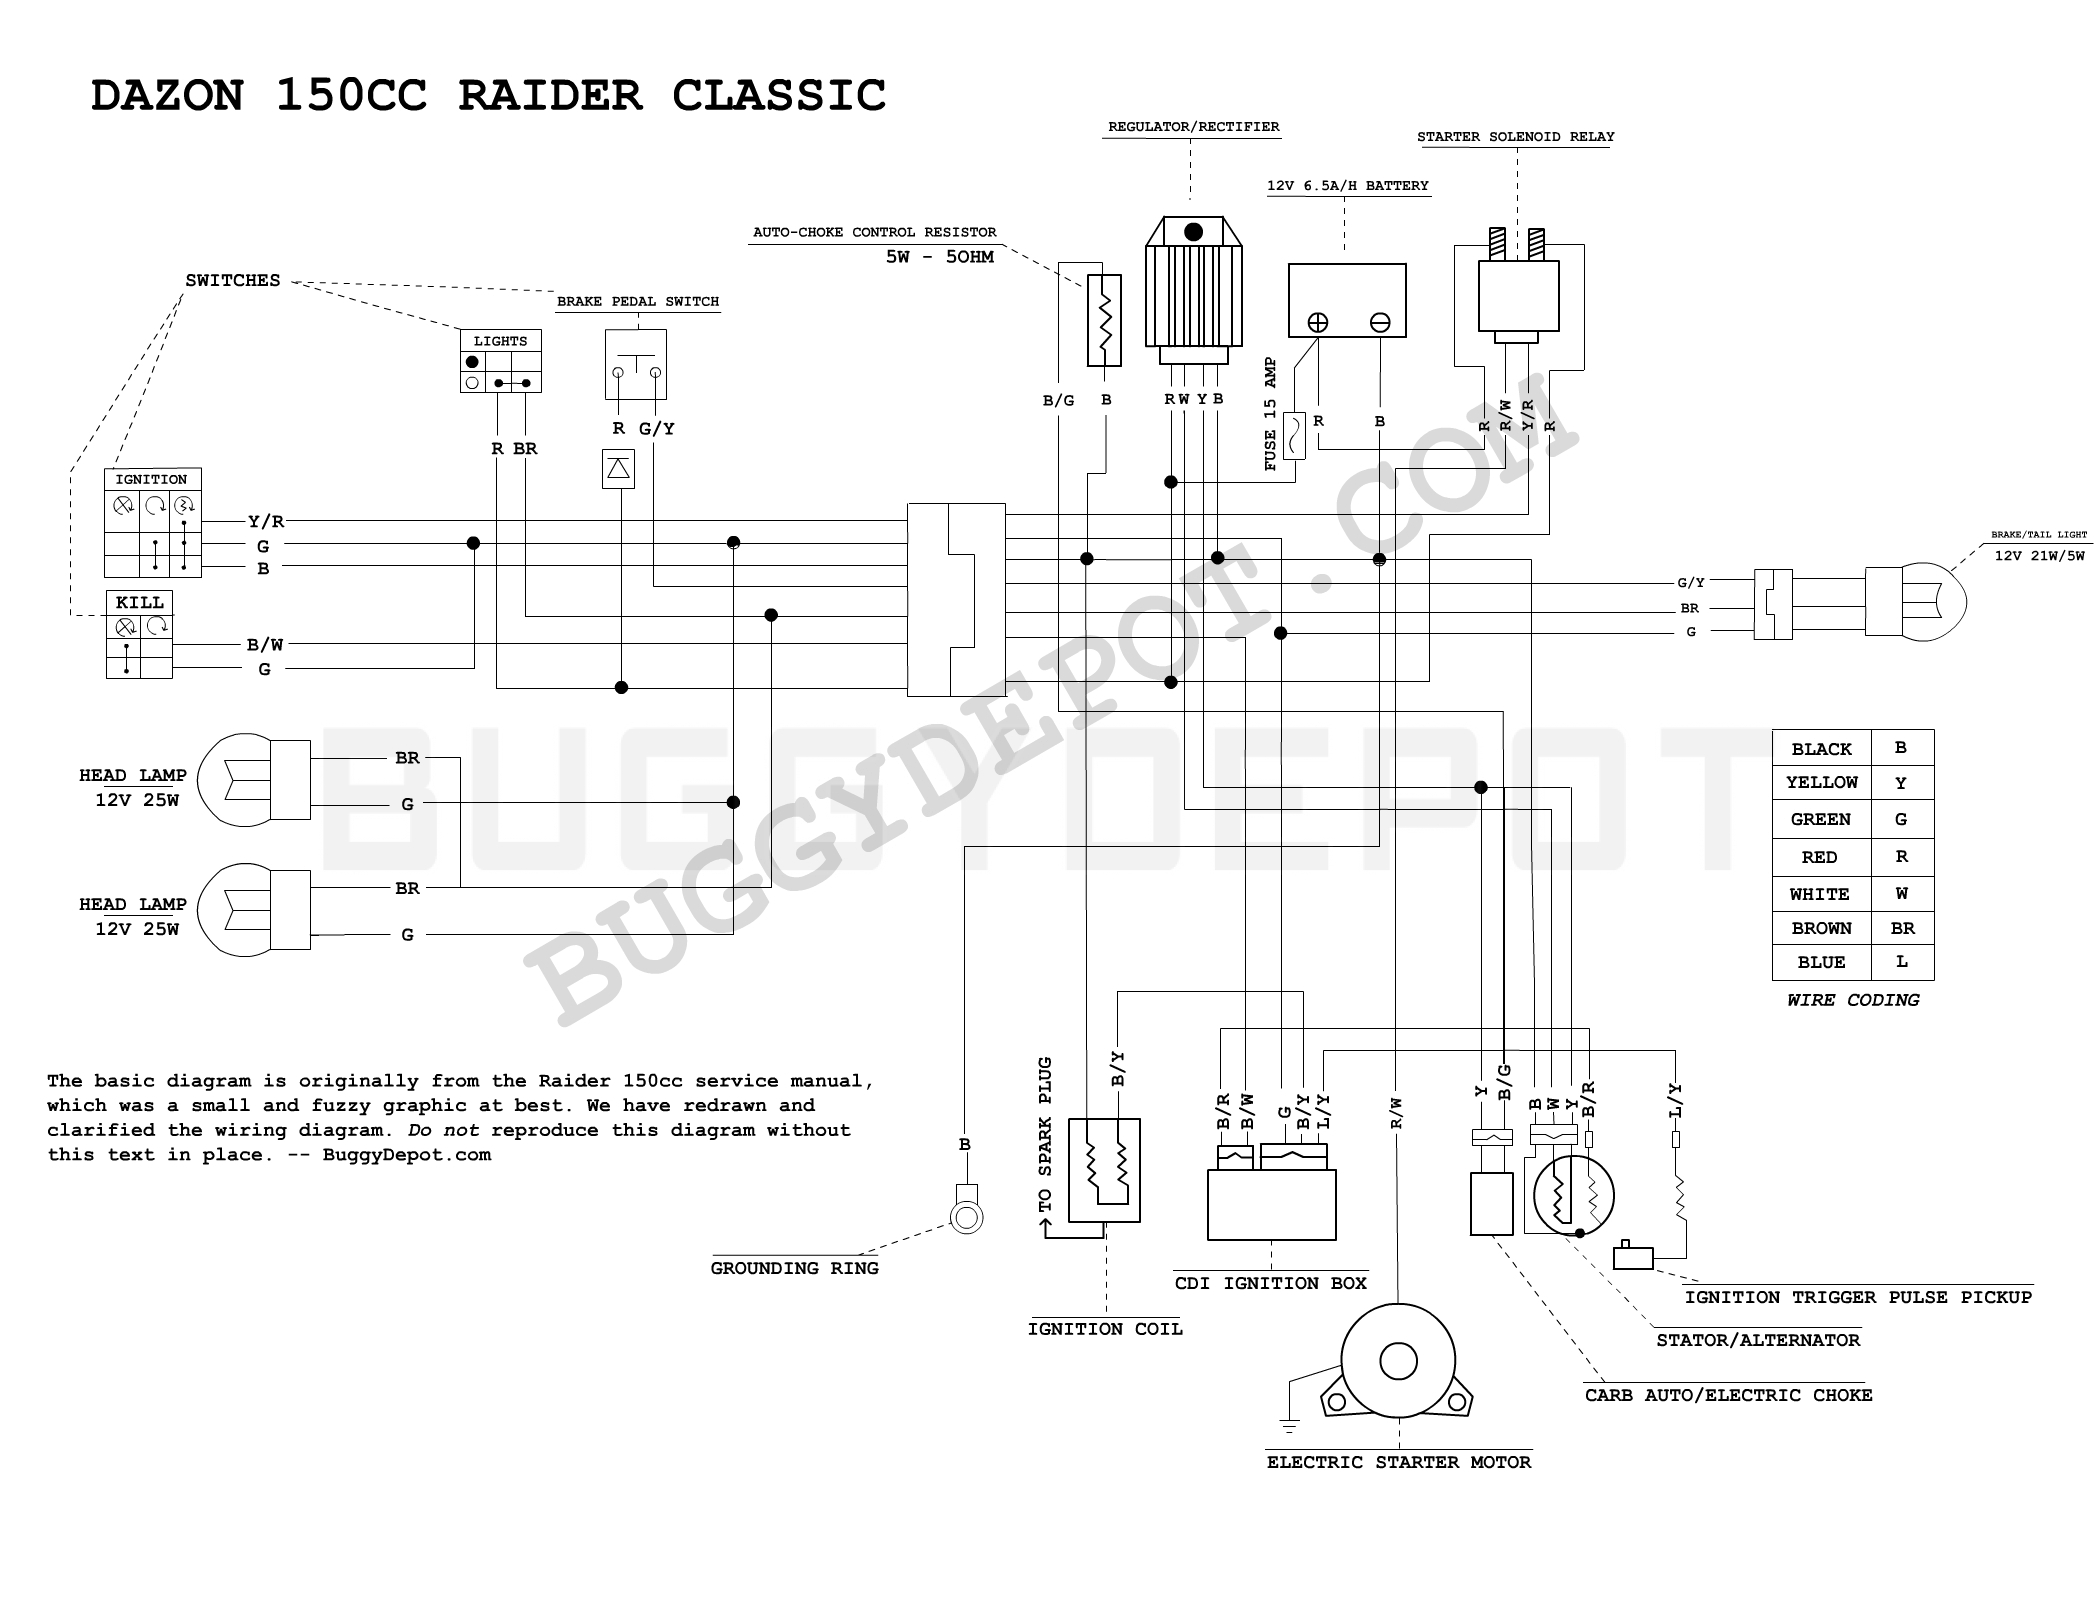 article_33_1278205207 dazon raider classic wiring diagram buggy depot technical center gy6 electric choke wiring diagram at gsmportal.co